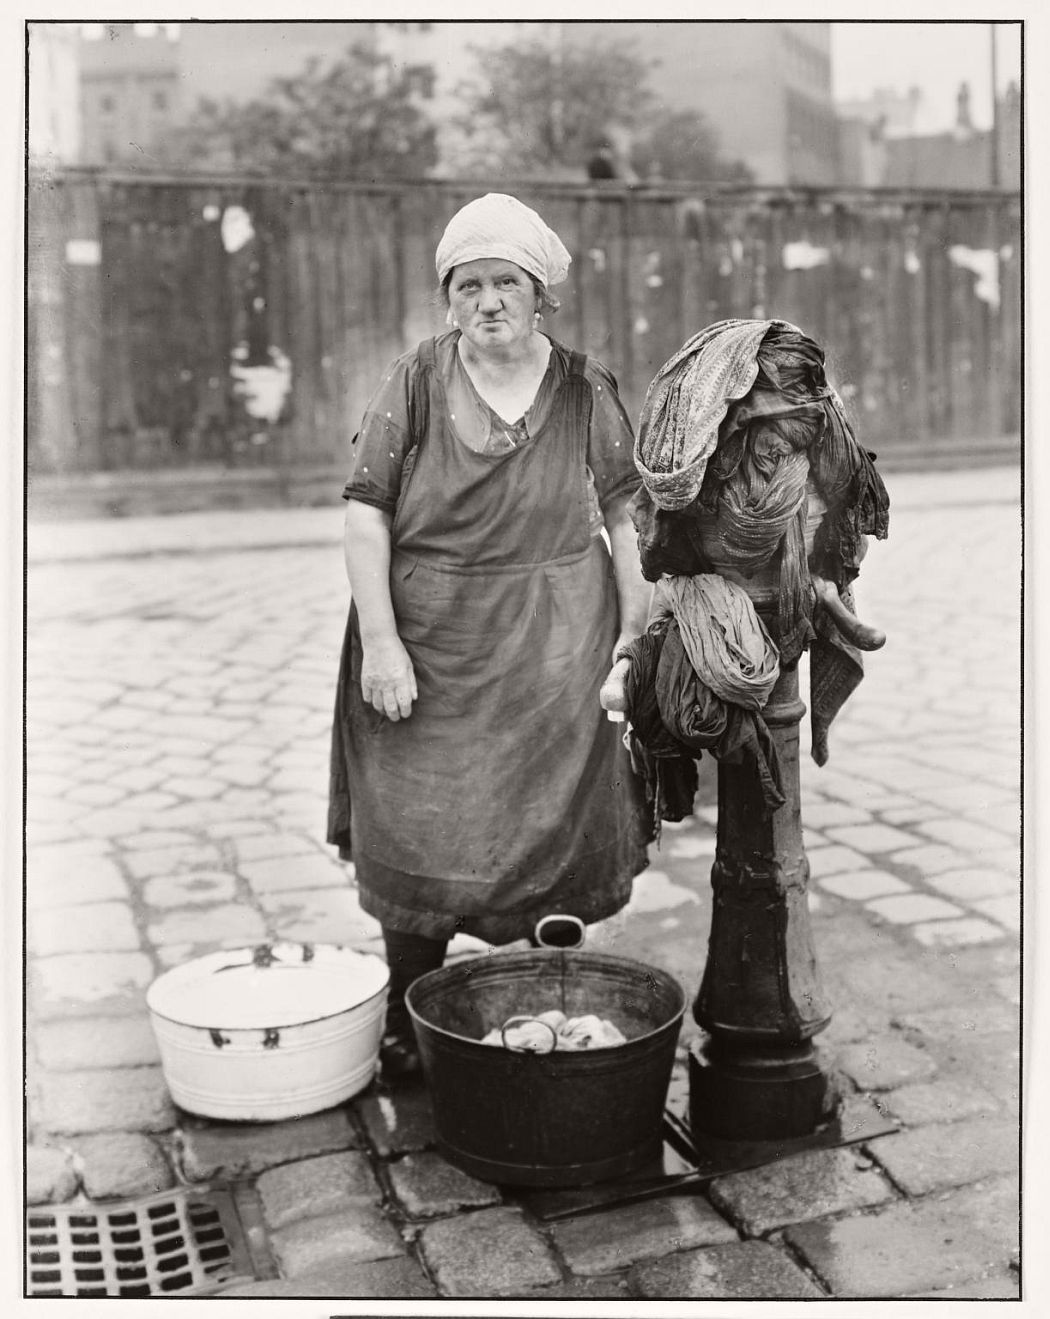 Washerwoman c. 1930, printed 1990 August Sander 1876-1964 ARTIST ROOMS  Tate and National Galleries of Scotland. Lent by Anthony d'Offay 2010 http://www.tate.org.uk/art/work/AL00131